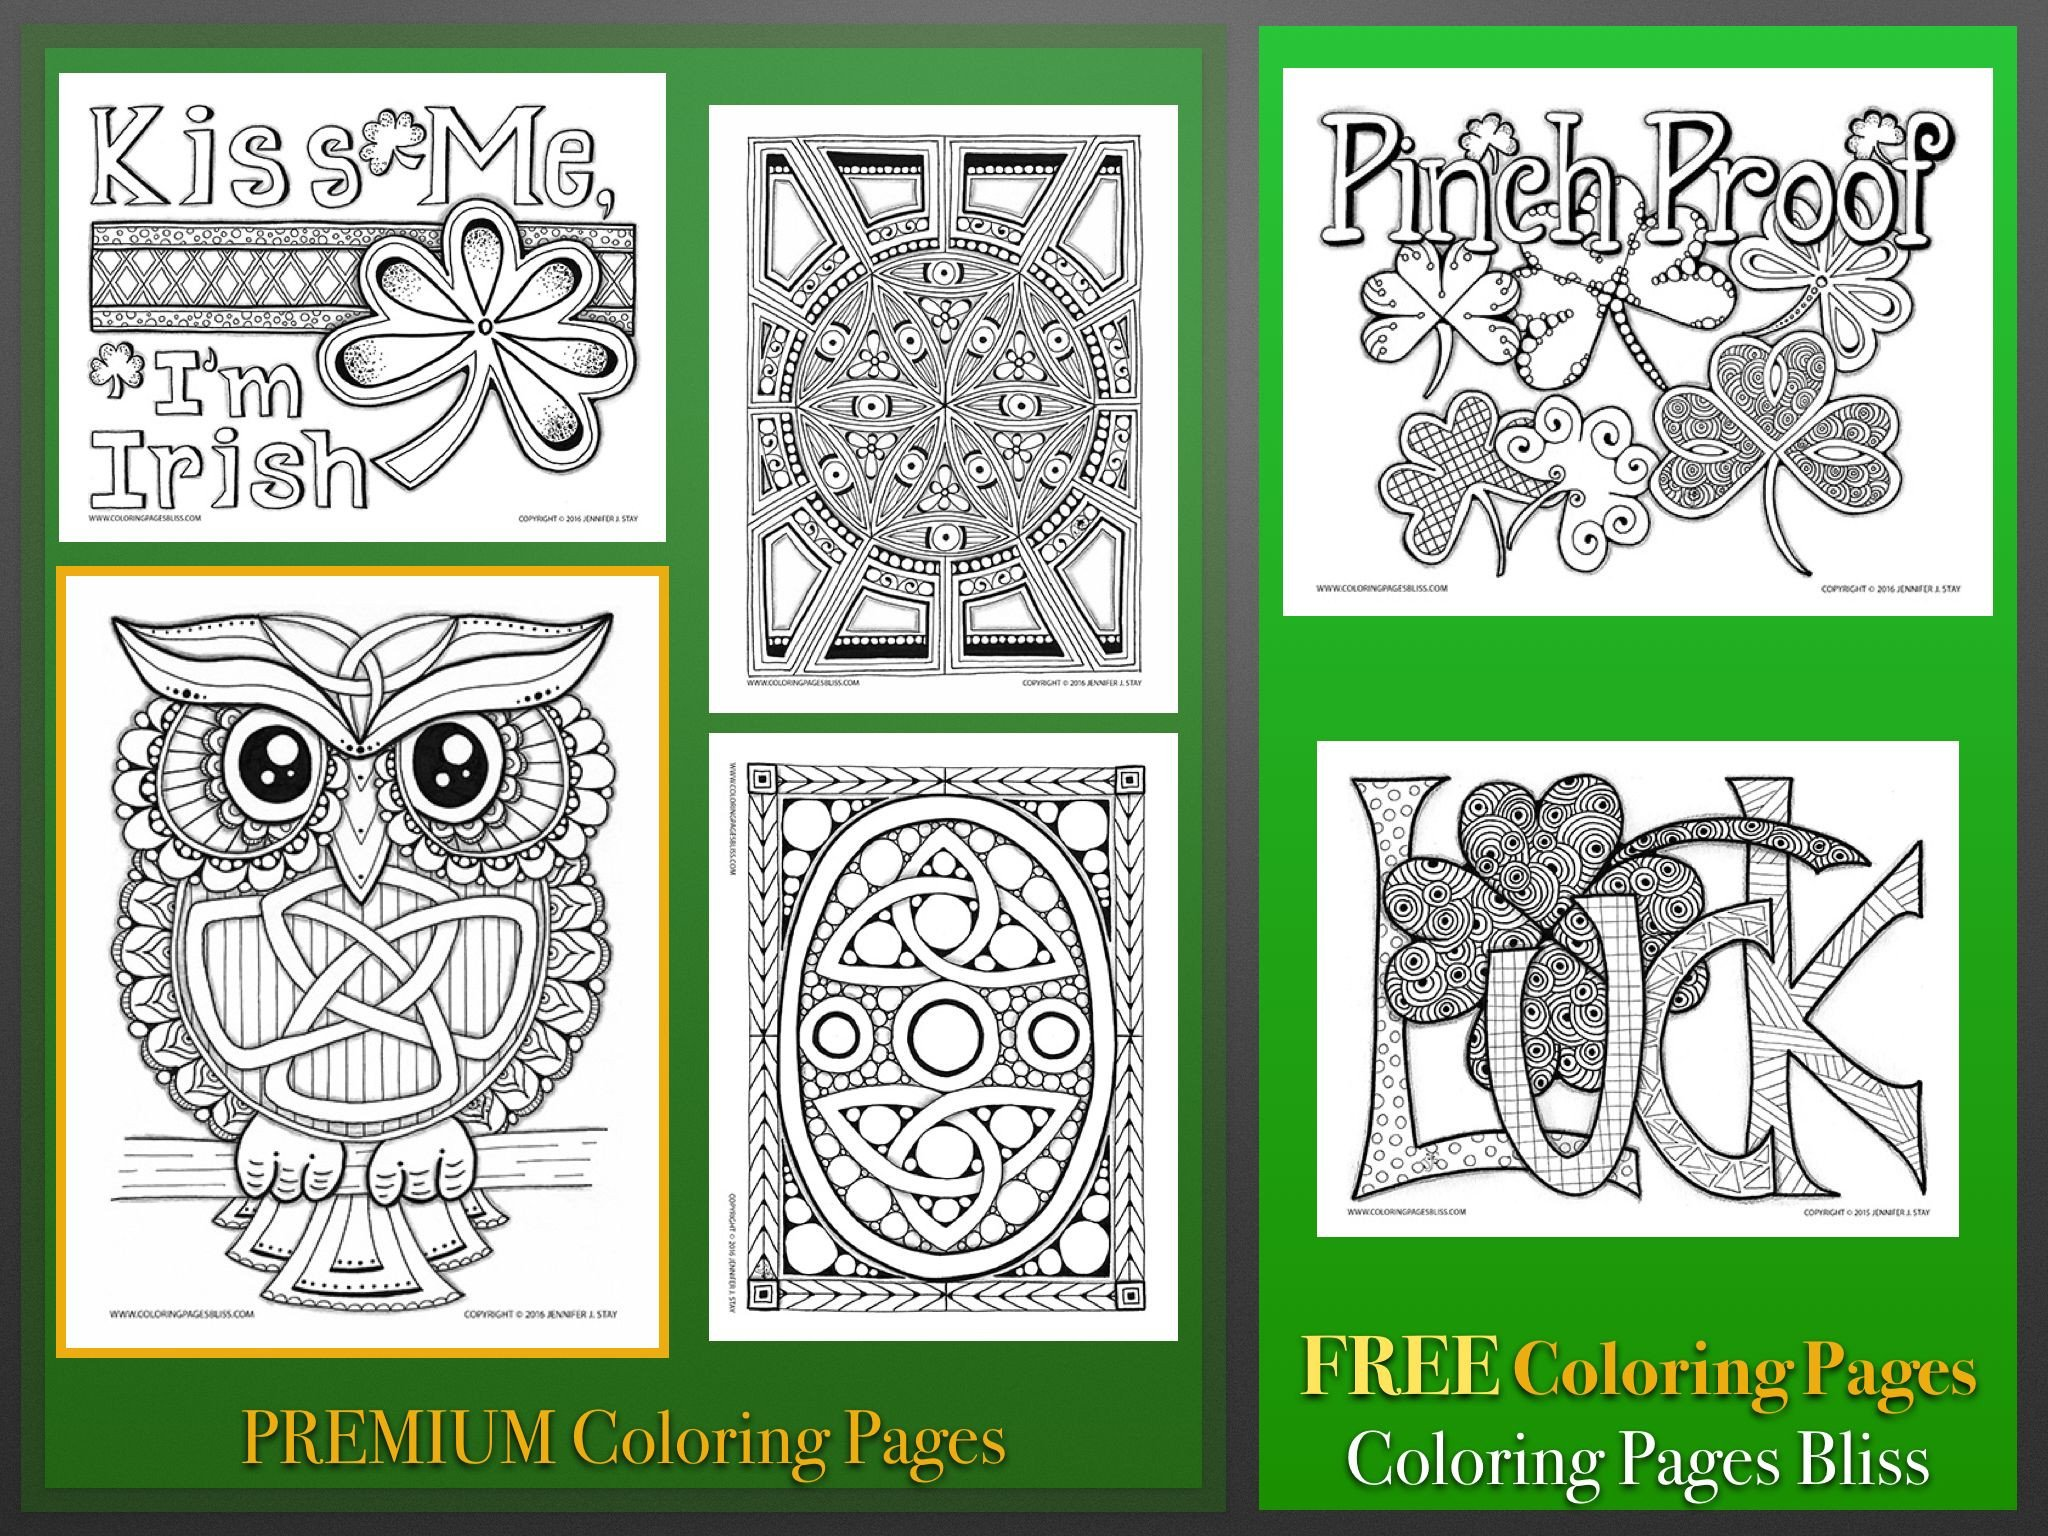 Free Printable St. Patrick's Day Coloring Pages - Oh My Creative   1536x2048